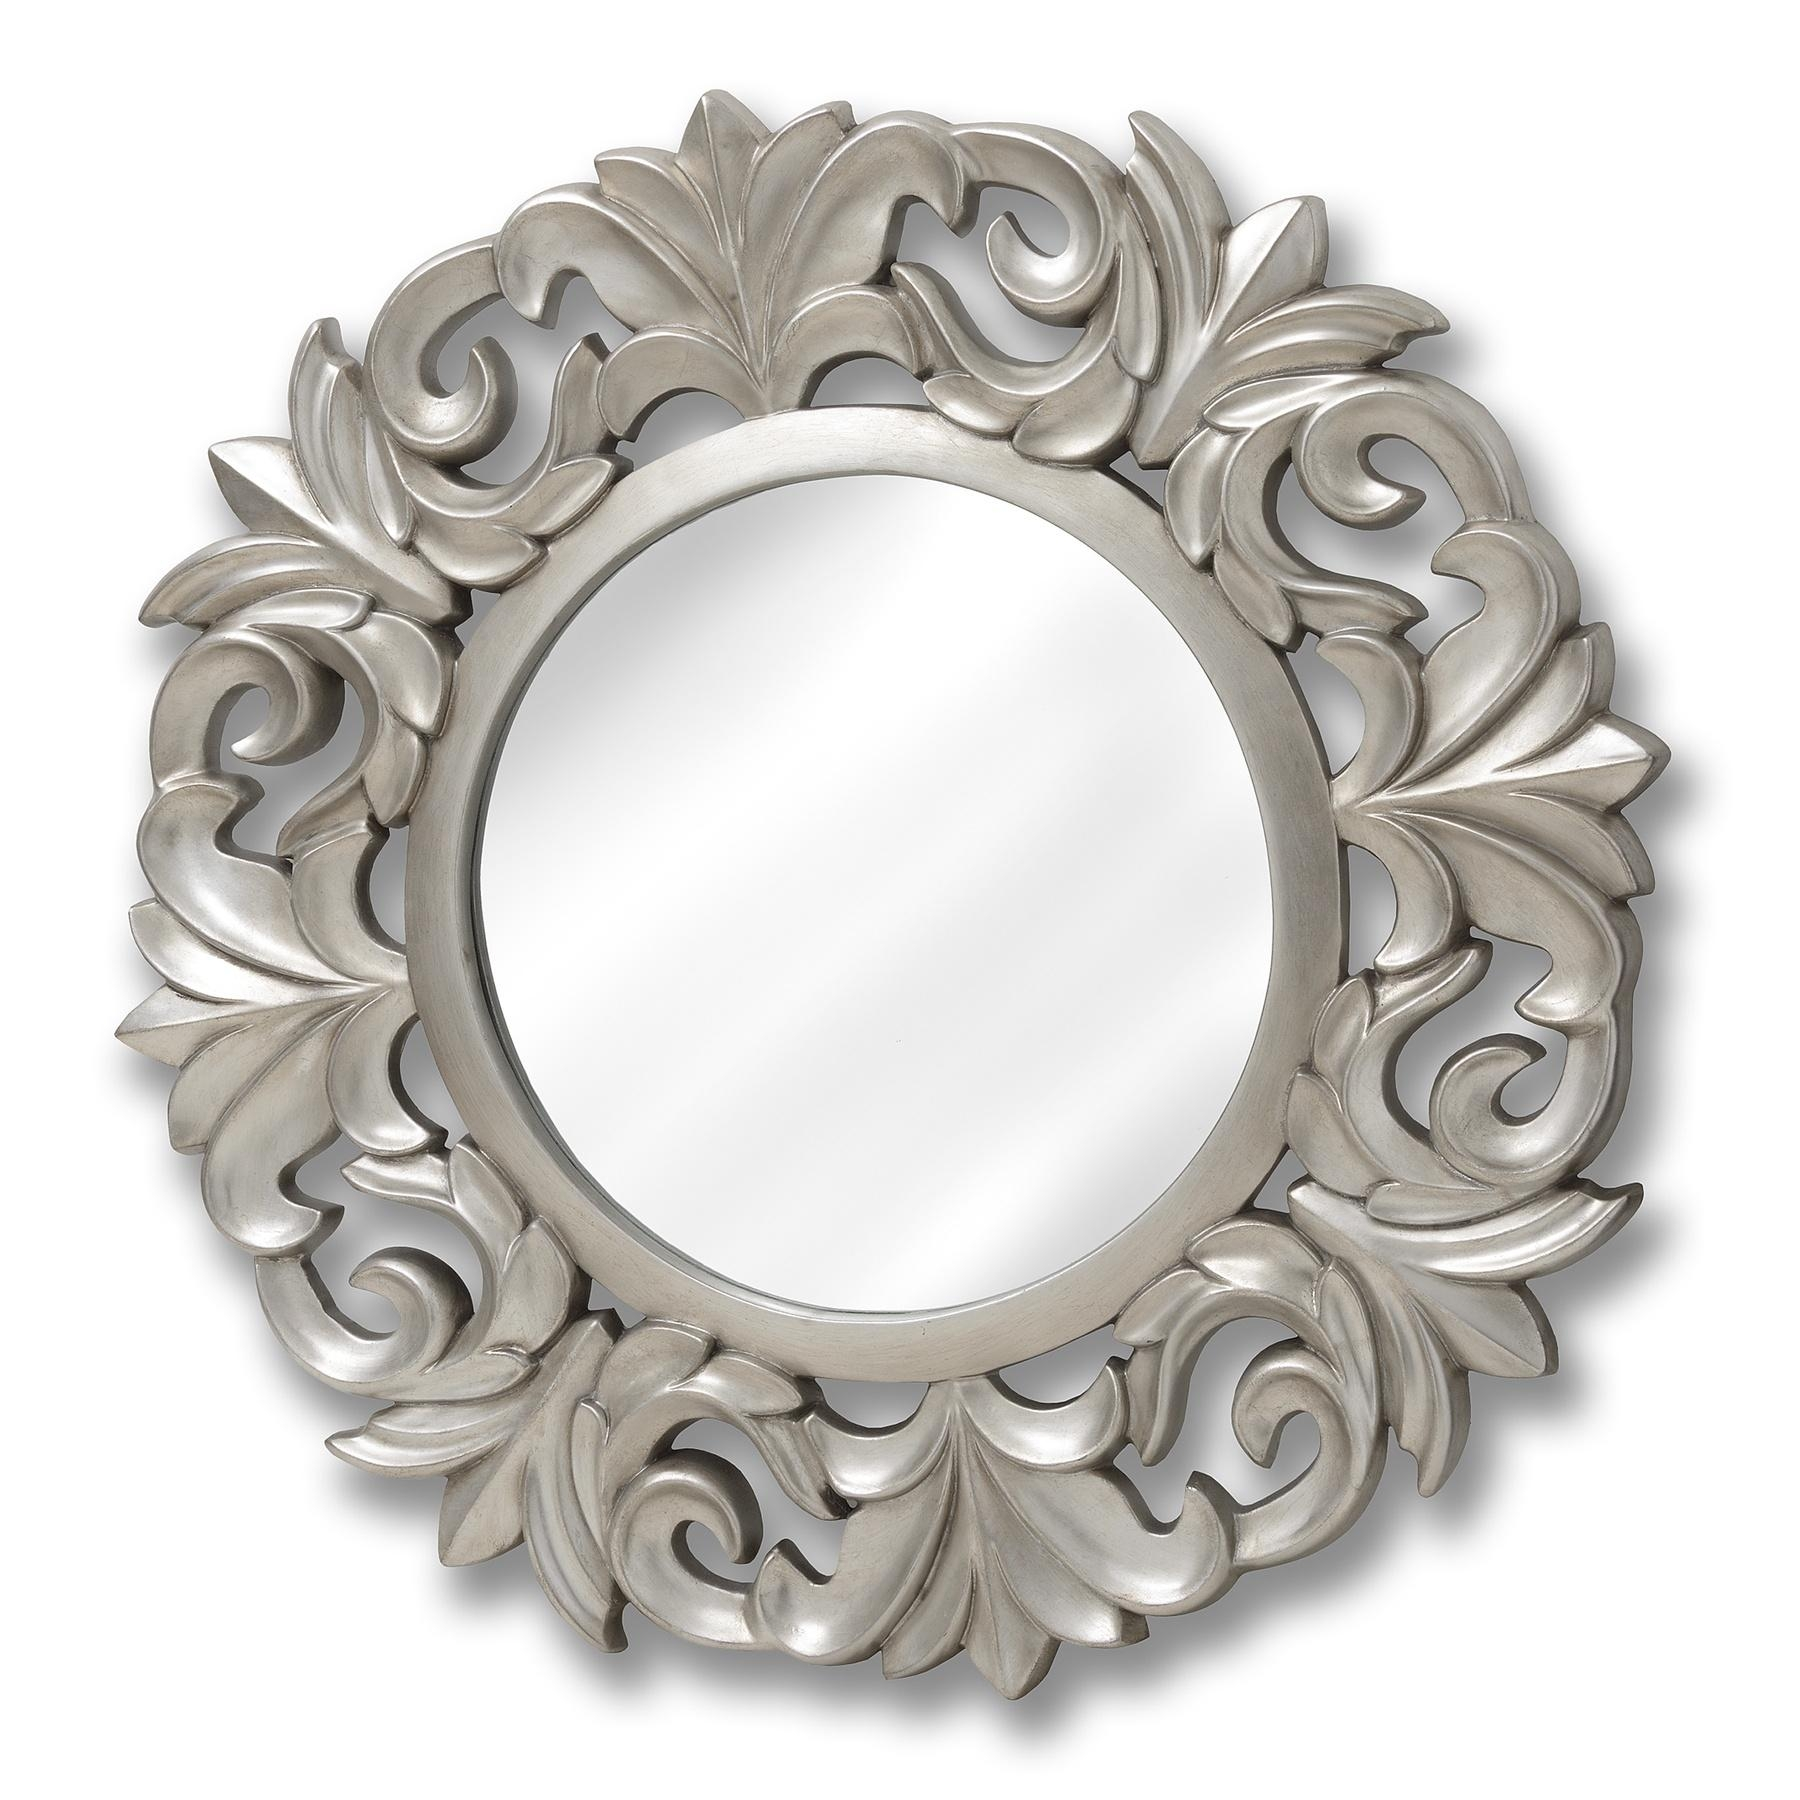 Baroque Style Round Silver Mirror | Happy Home Interiors With Regard To Baroque Mirror Silver (Image 4 of 20)